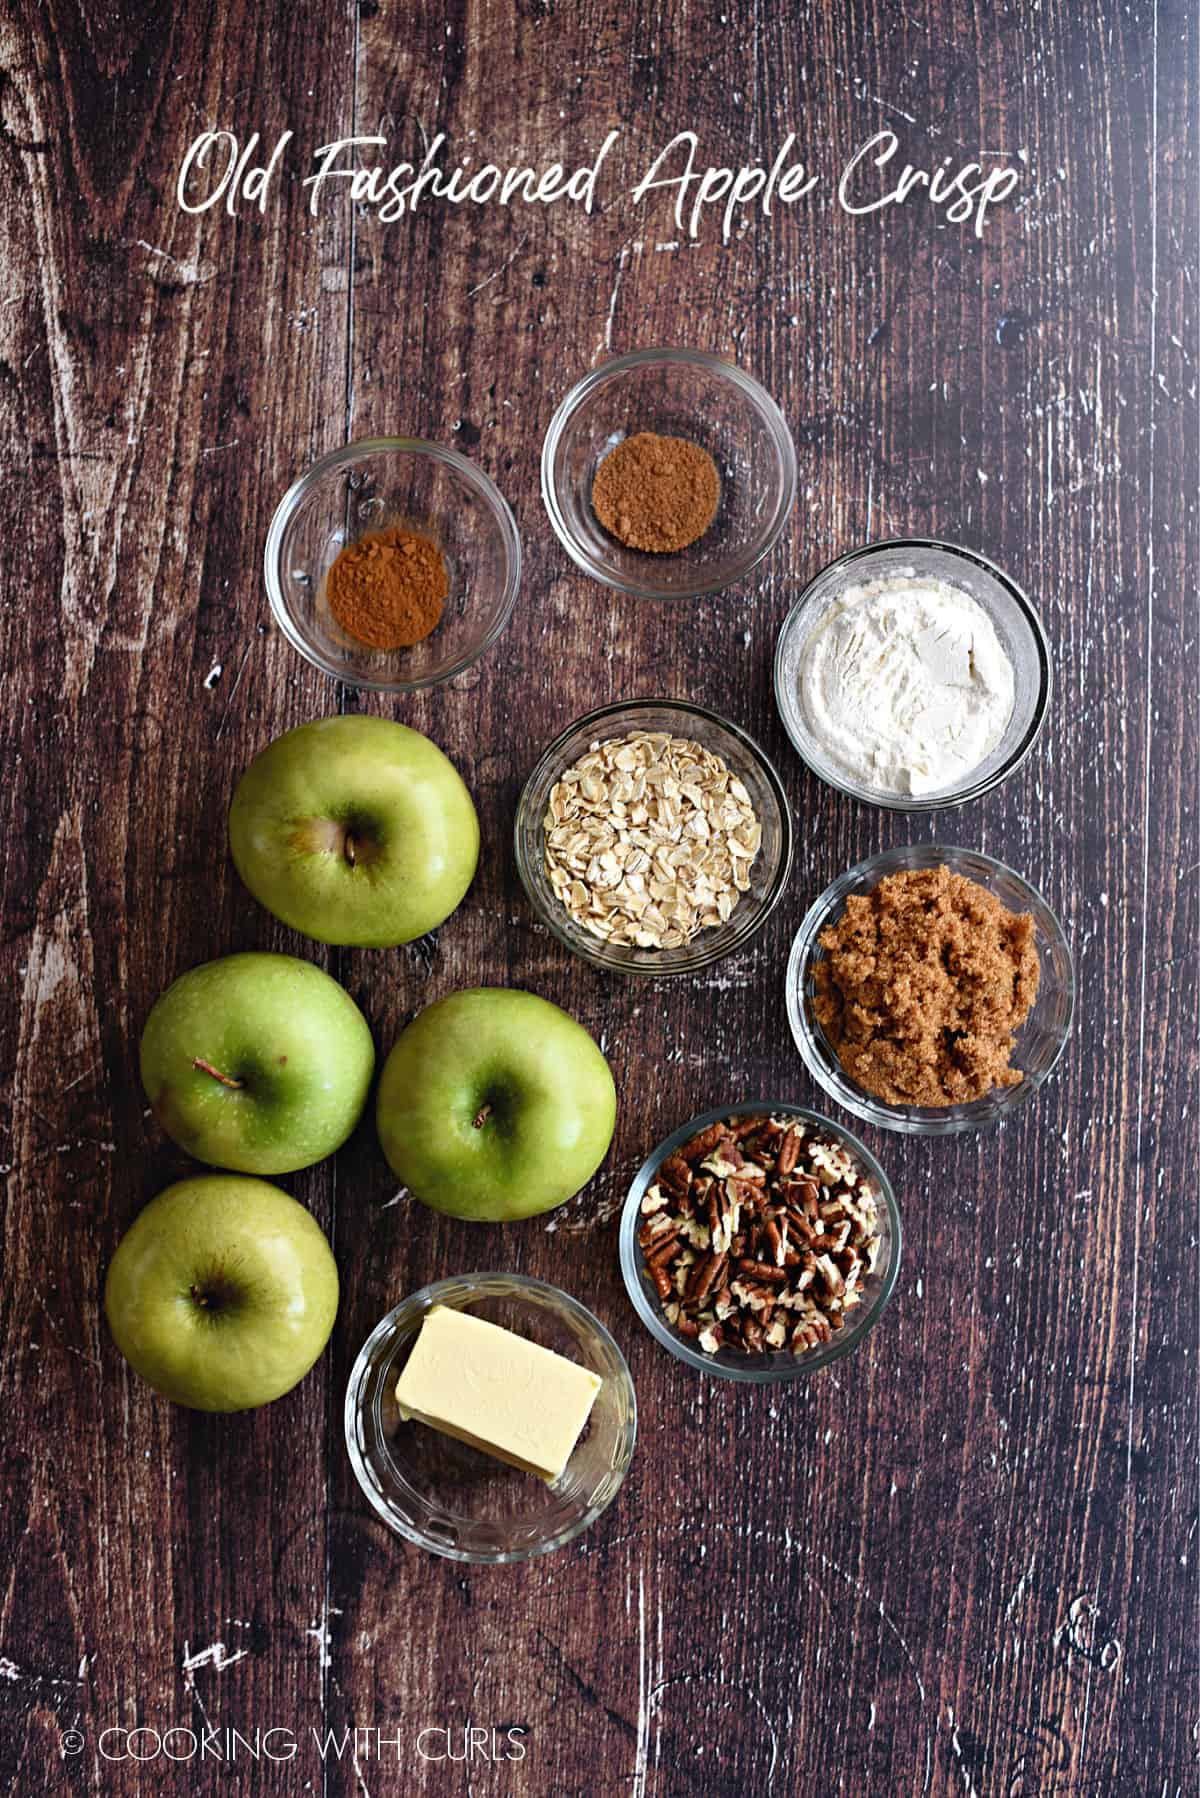 Old Fashioned Apple Crisp Ingredients laying on a wood background.